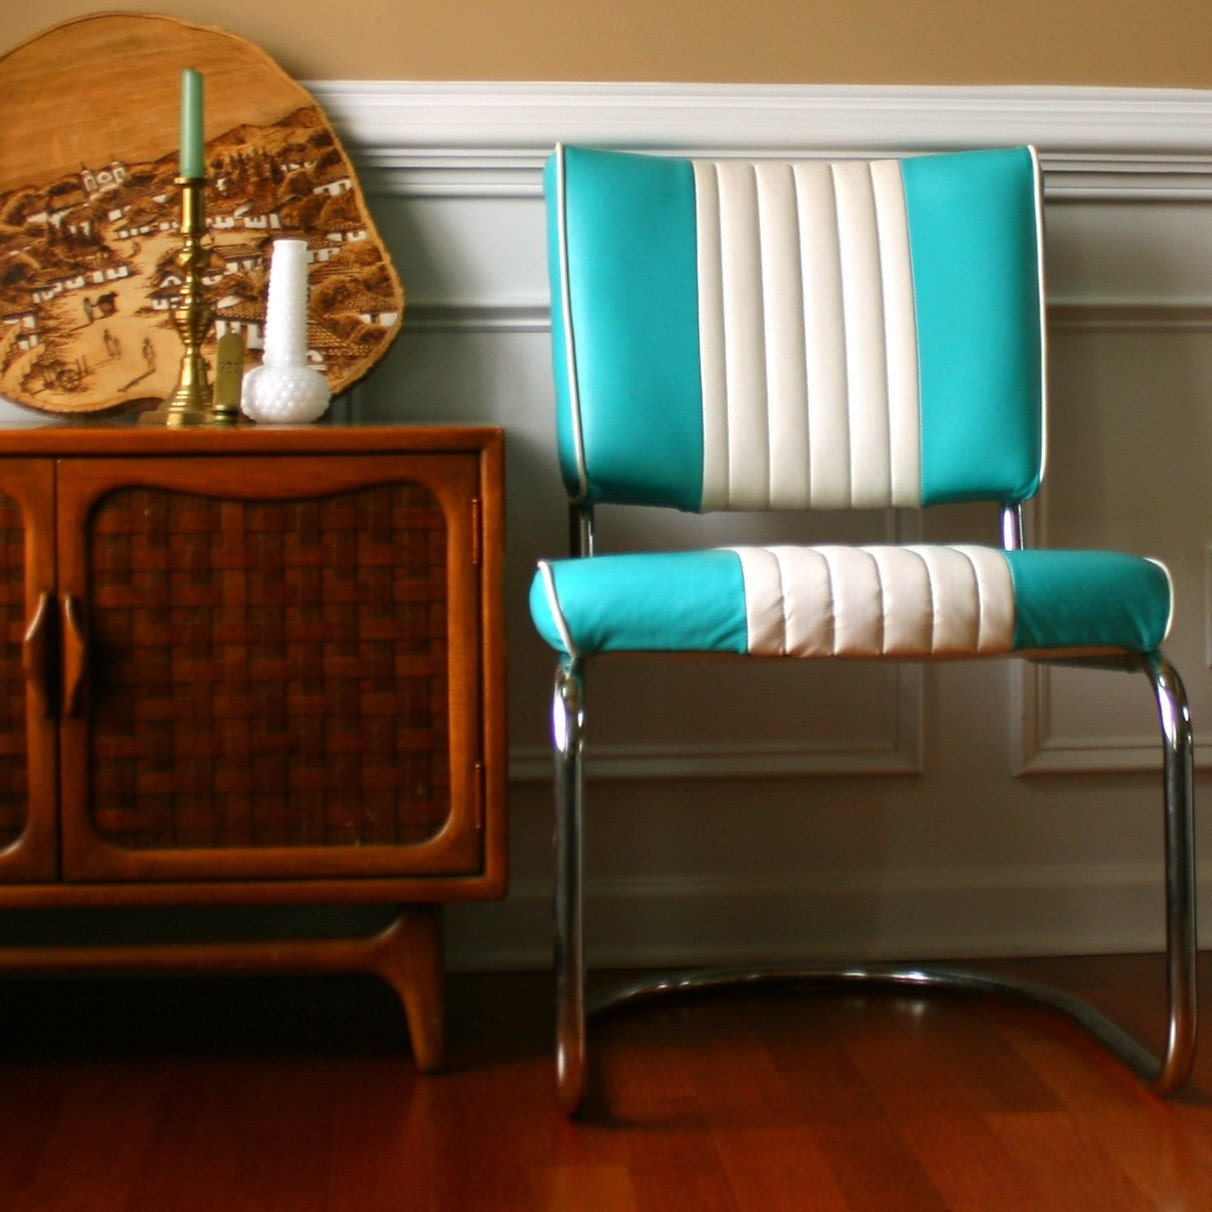 Vintage Turquoise Chair Retro Diner Style Vinyl by RhapsodyAttic